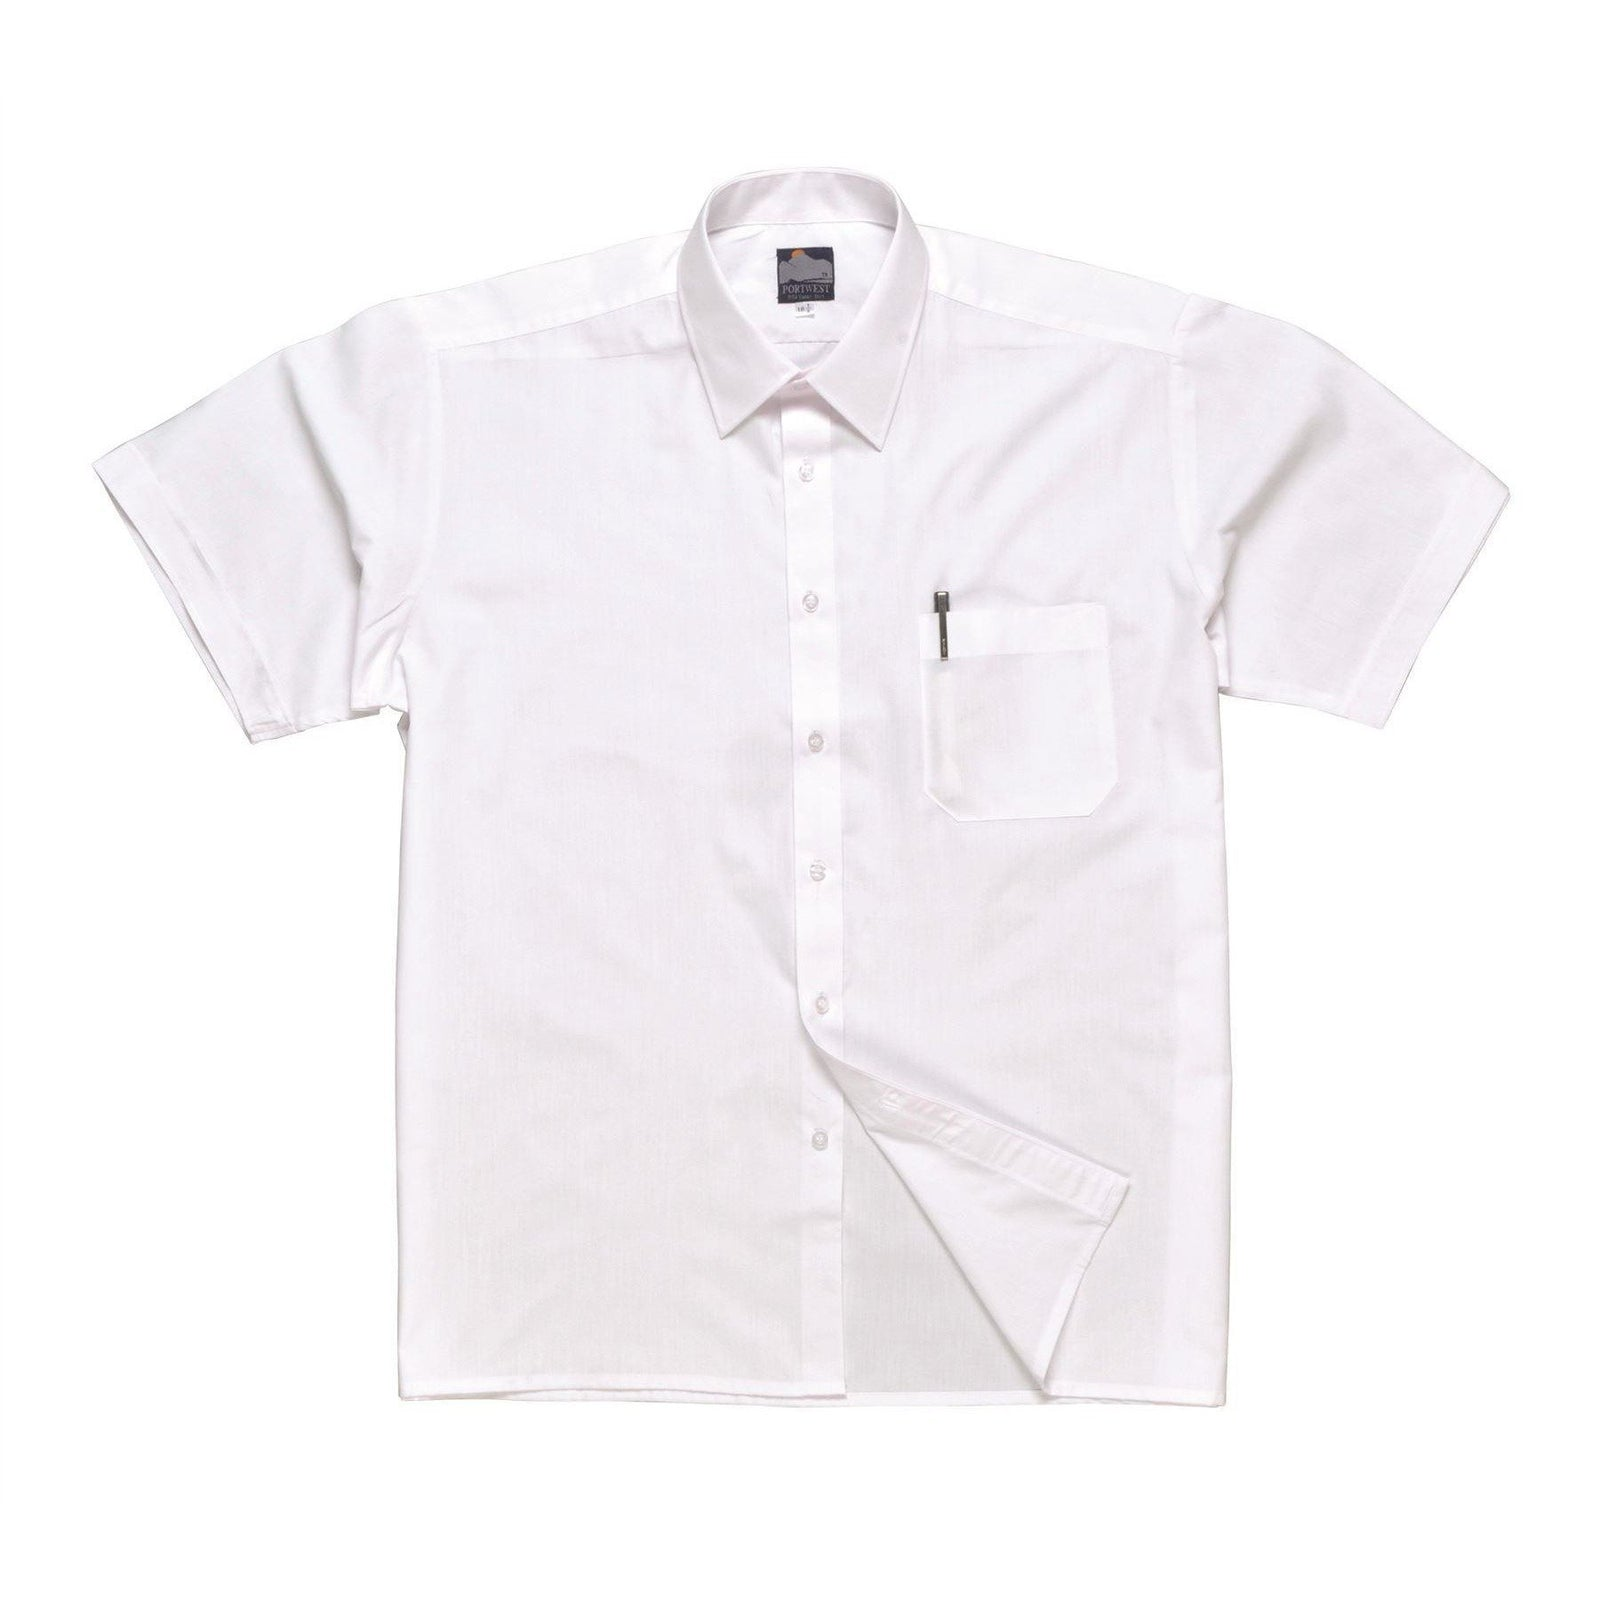 Portwest S104 Classic Shirt S104 - reid outdoors